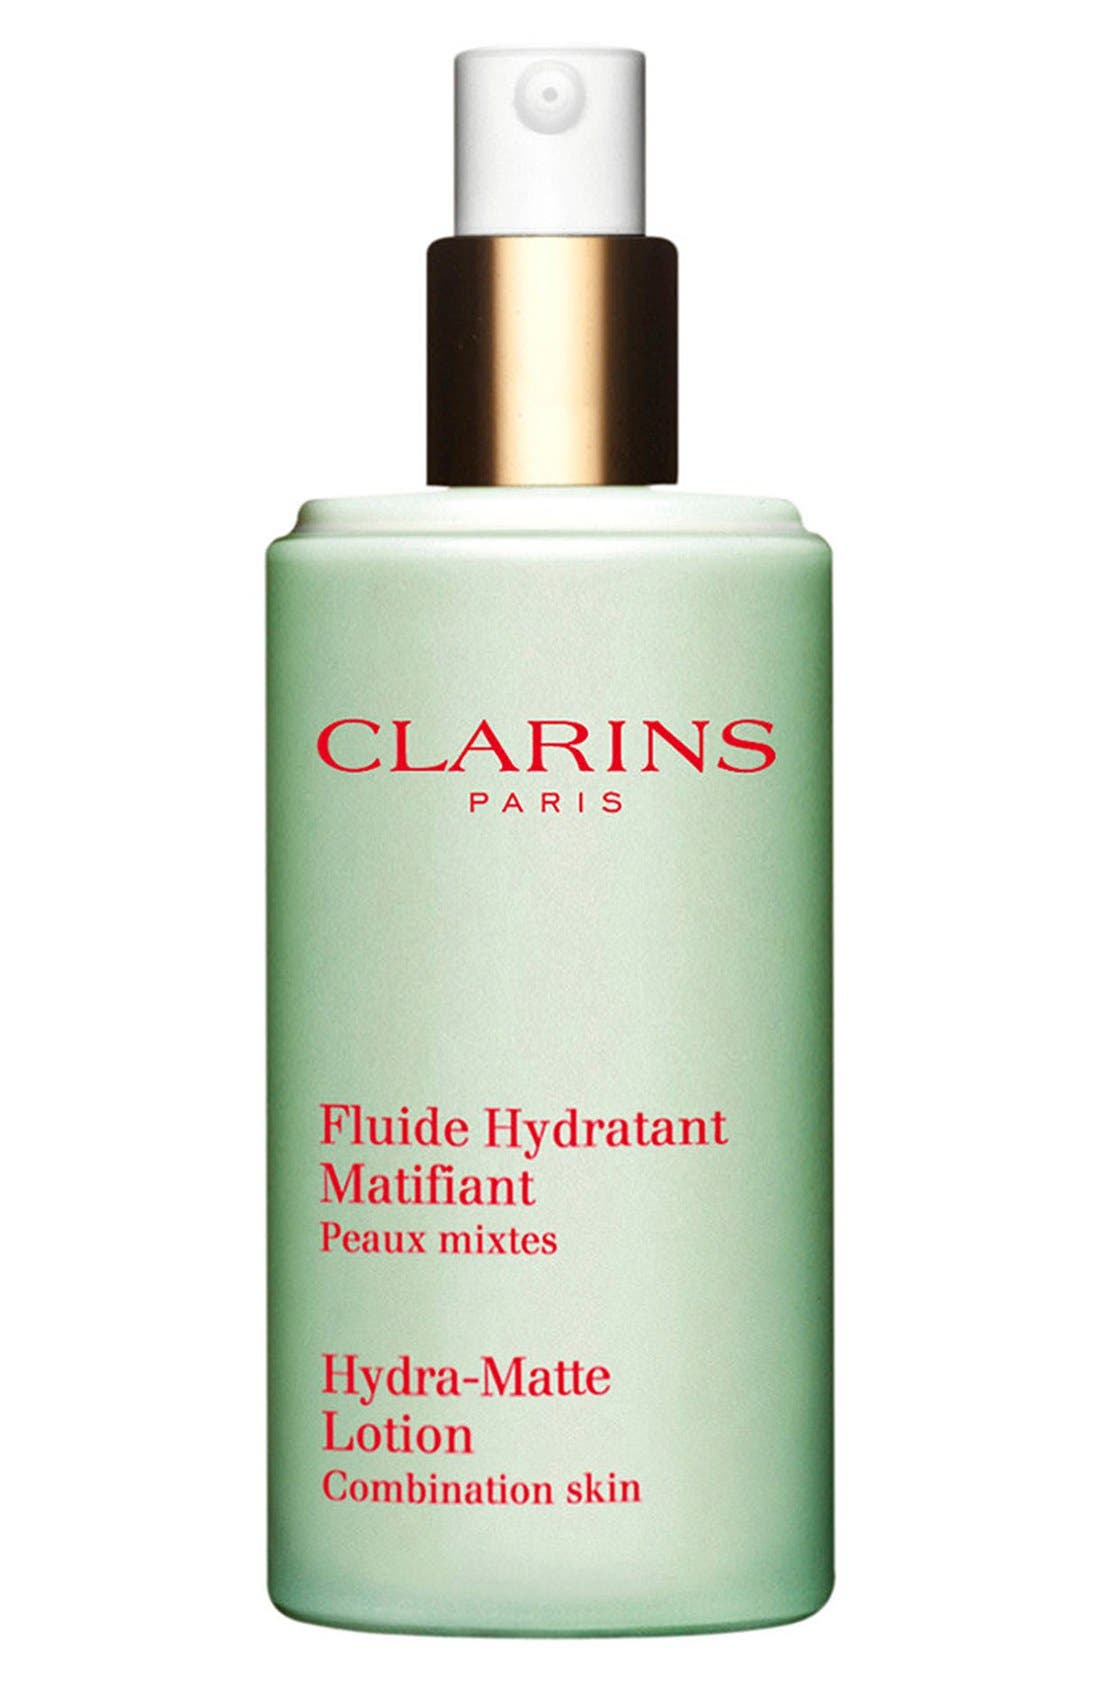 CLARINS, Hydra-Matte Lotion, Alternate thumbnail 2, color, NO COLOR